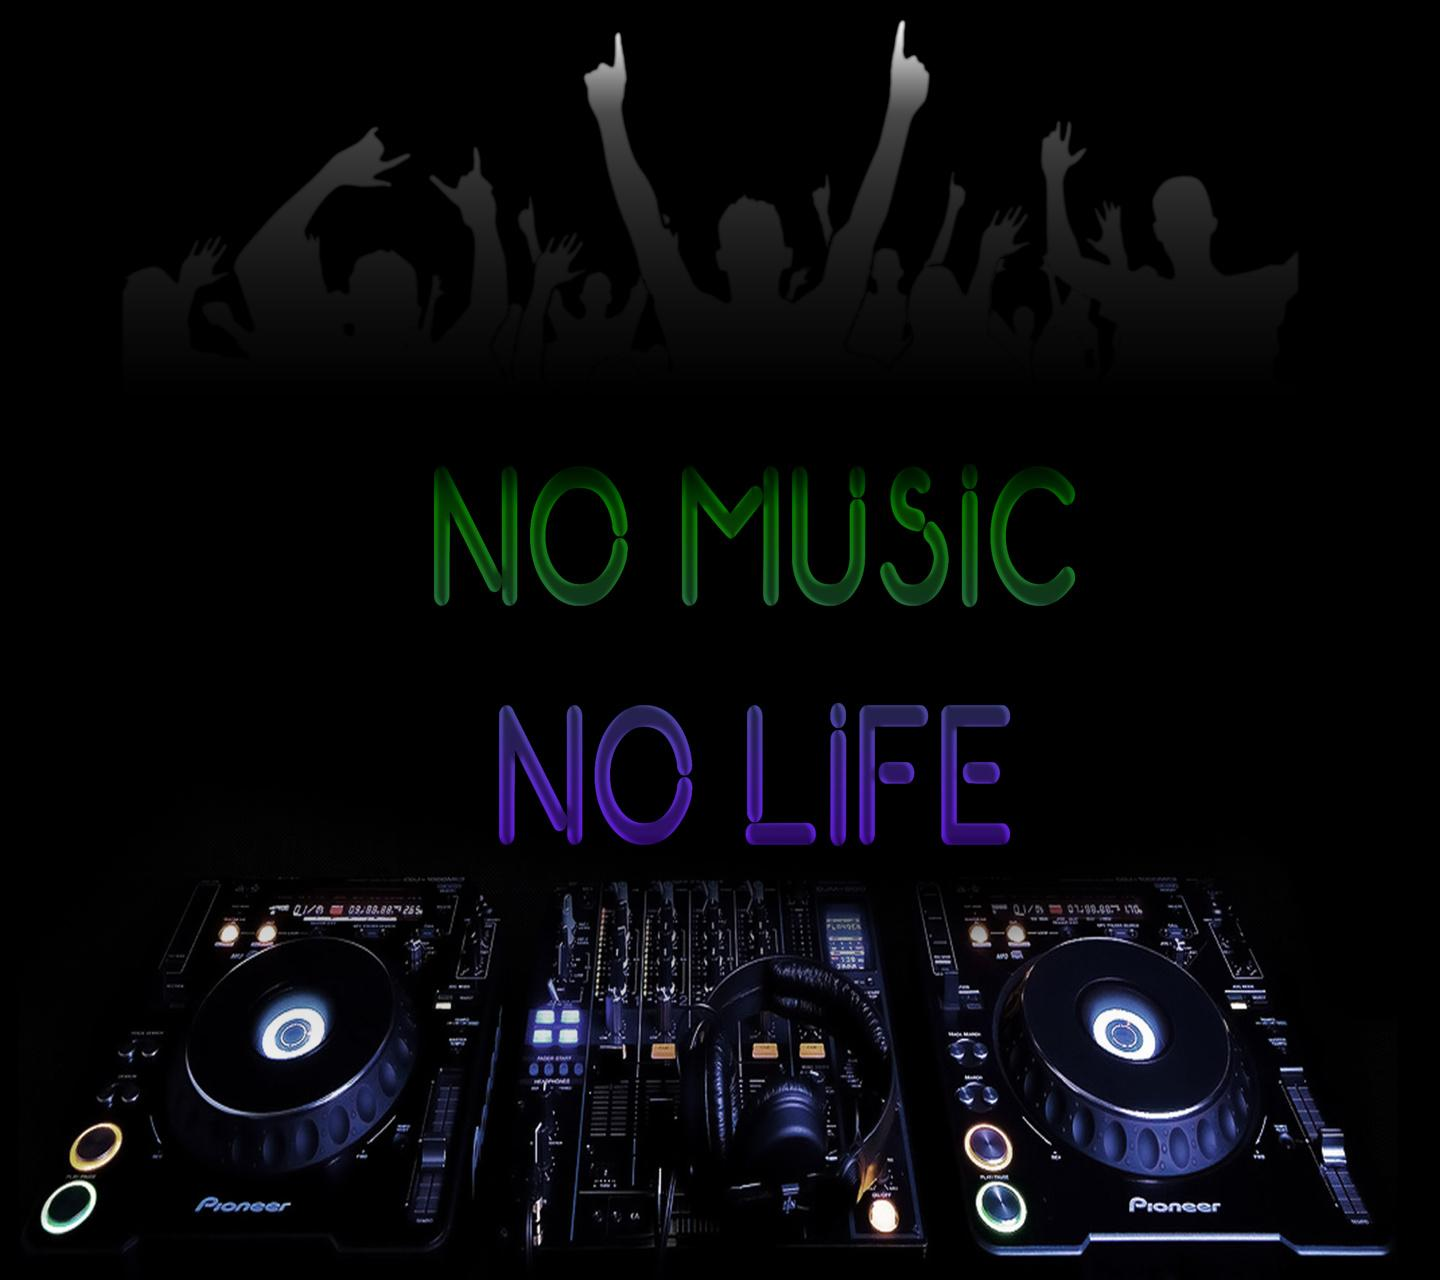 Download no music no life hd wallpaper for laptop saying quote wallpapers for your mobile cell - Music is life hd ...